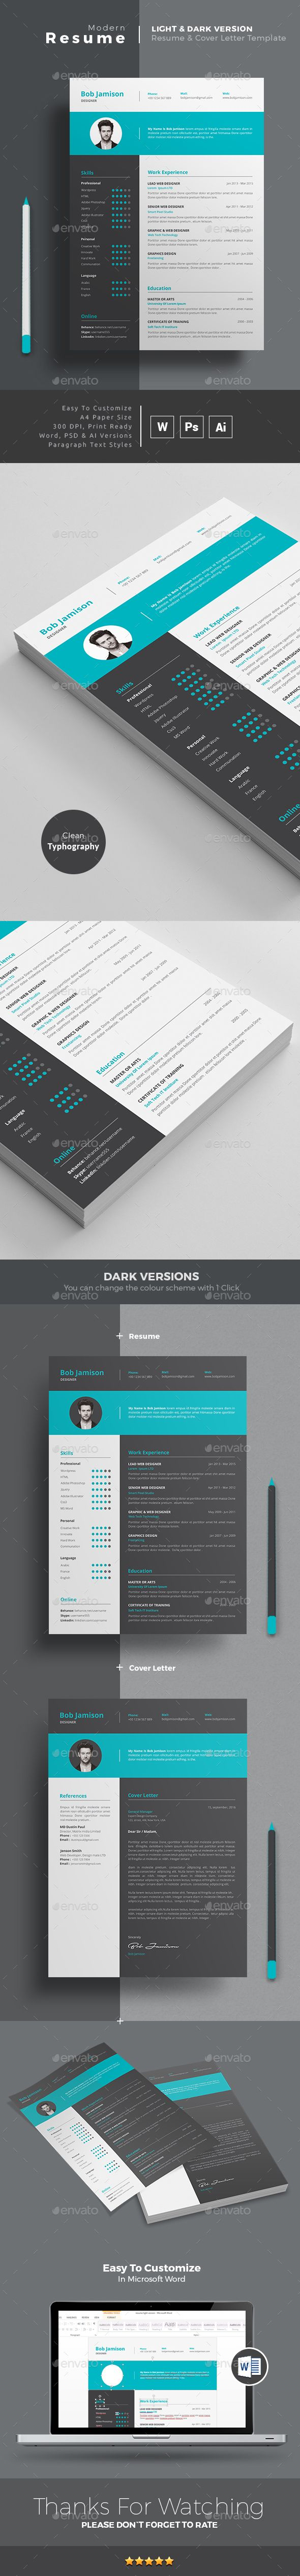 MS WORD CV Template | Resume Template + Cover Letter | PSD + AI Versions with color options. Download and Edit http://graphicriver.net/item/resume/14779867?ref=themedevisers